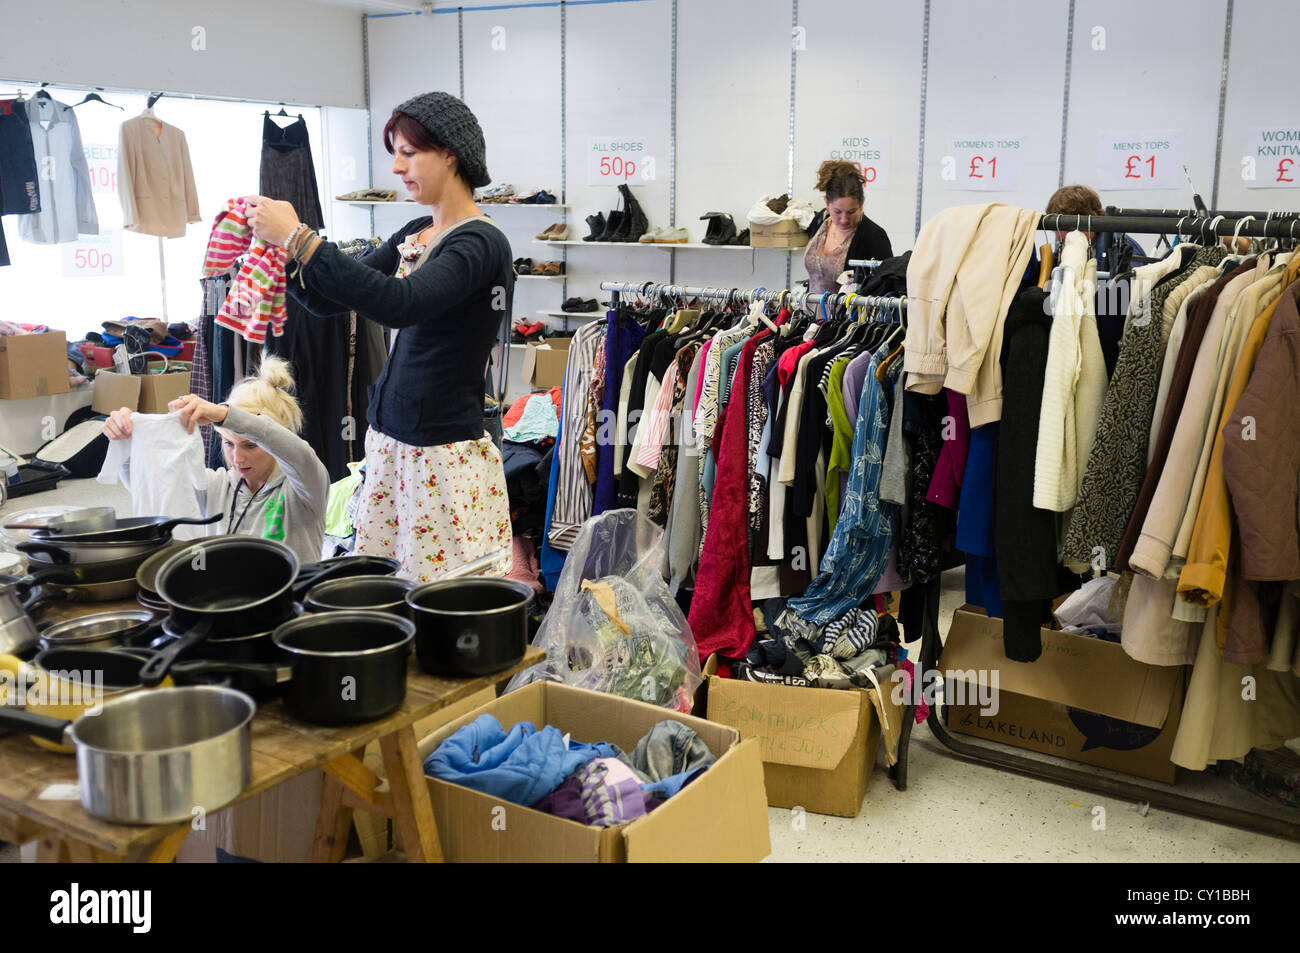 Women browsing racks of second hand clothes and goods on sale in a ...